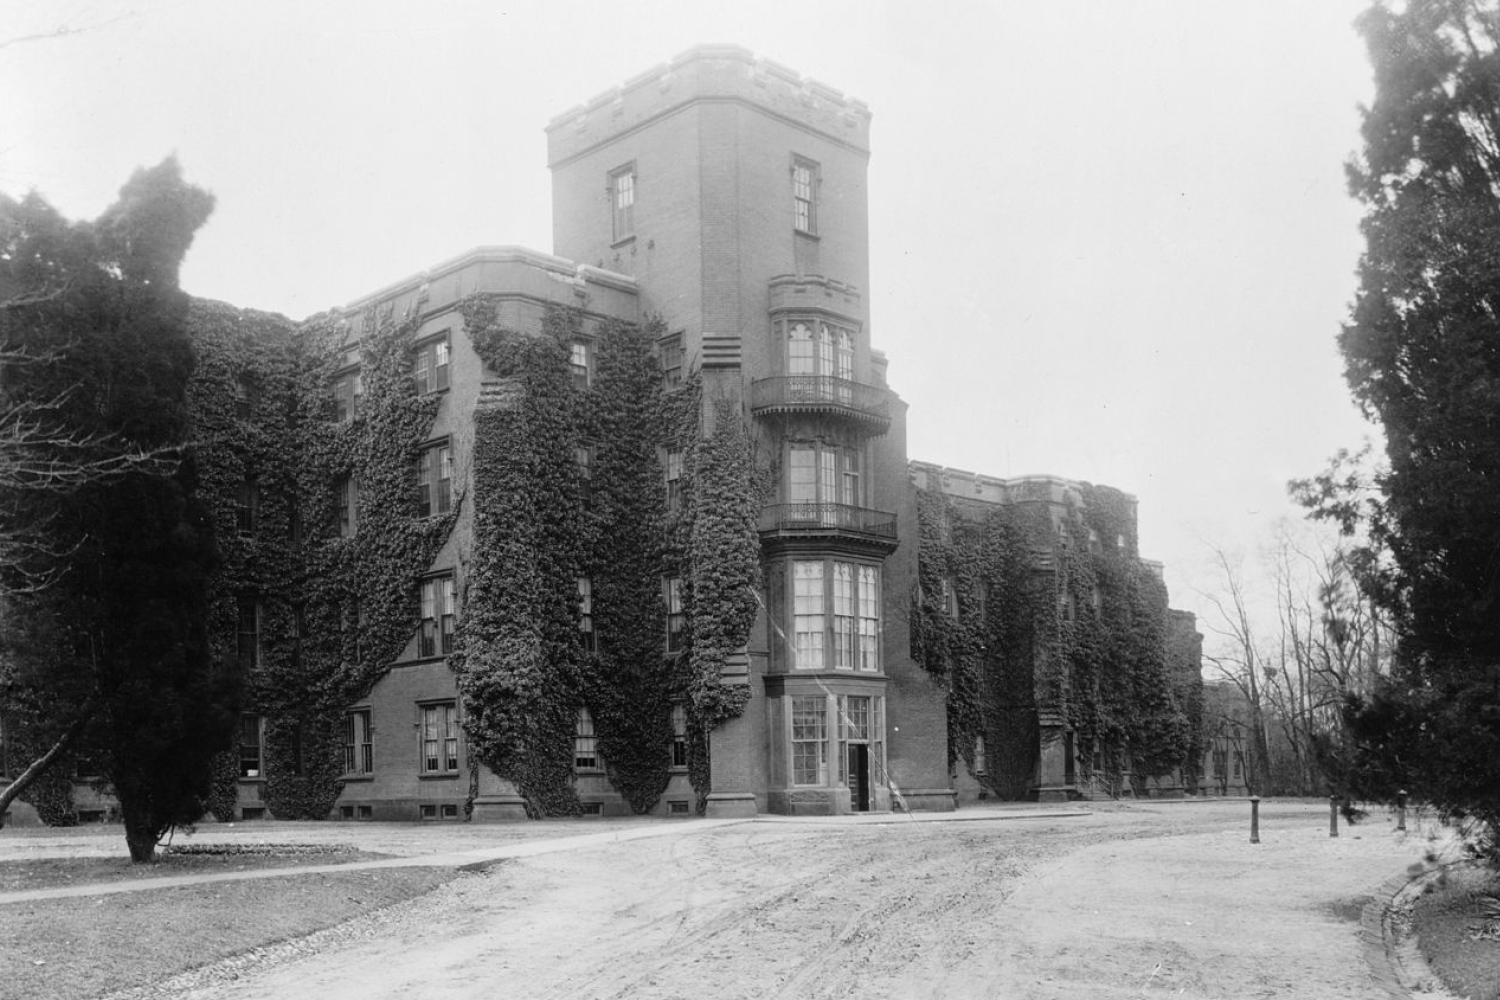 St. Elizabeths, opened in 1855, was designed to take full advantage of its natural surroundings.